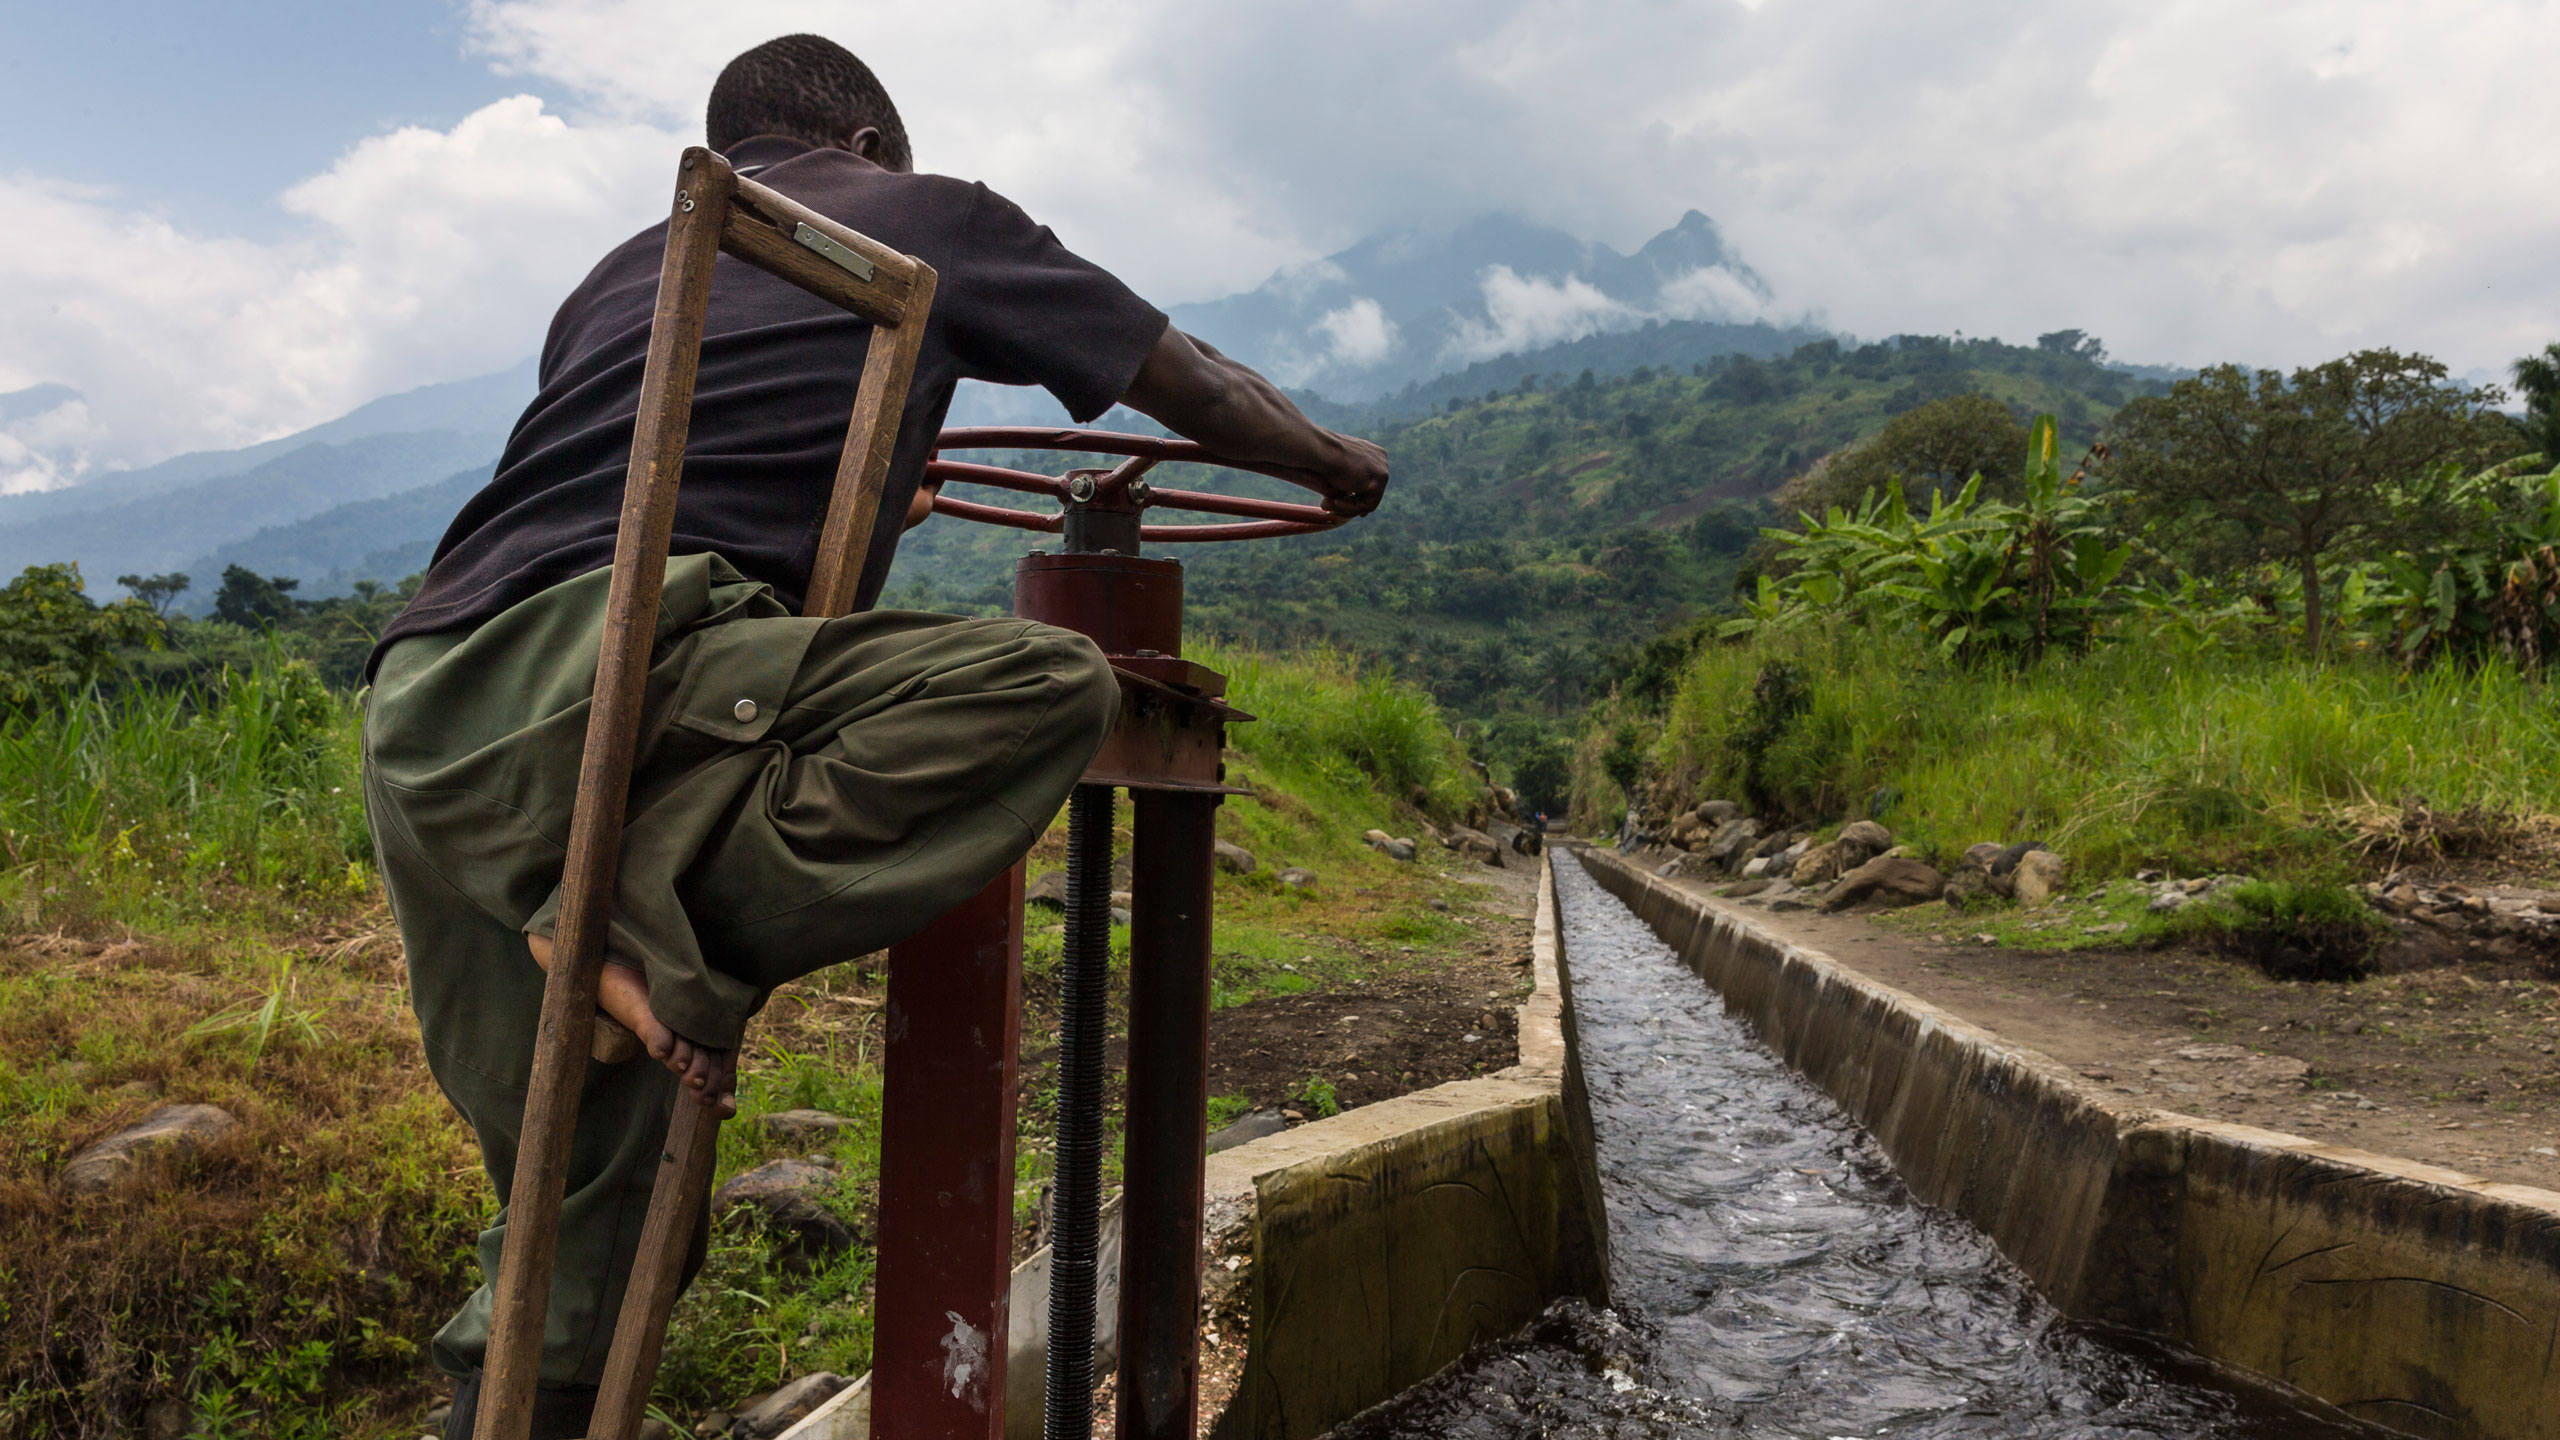 Brent Stirton / Reportage by Getty Images / WWF-Canon